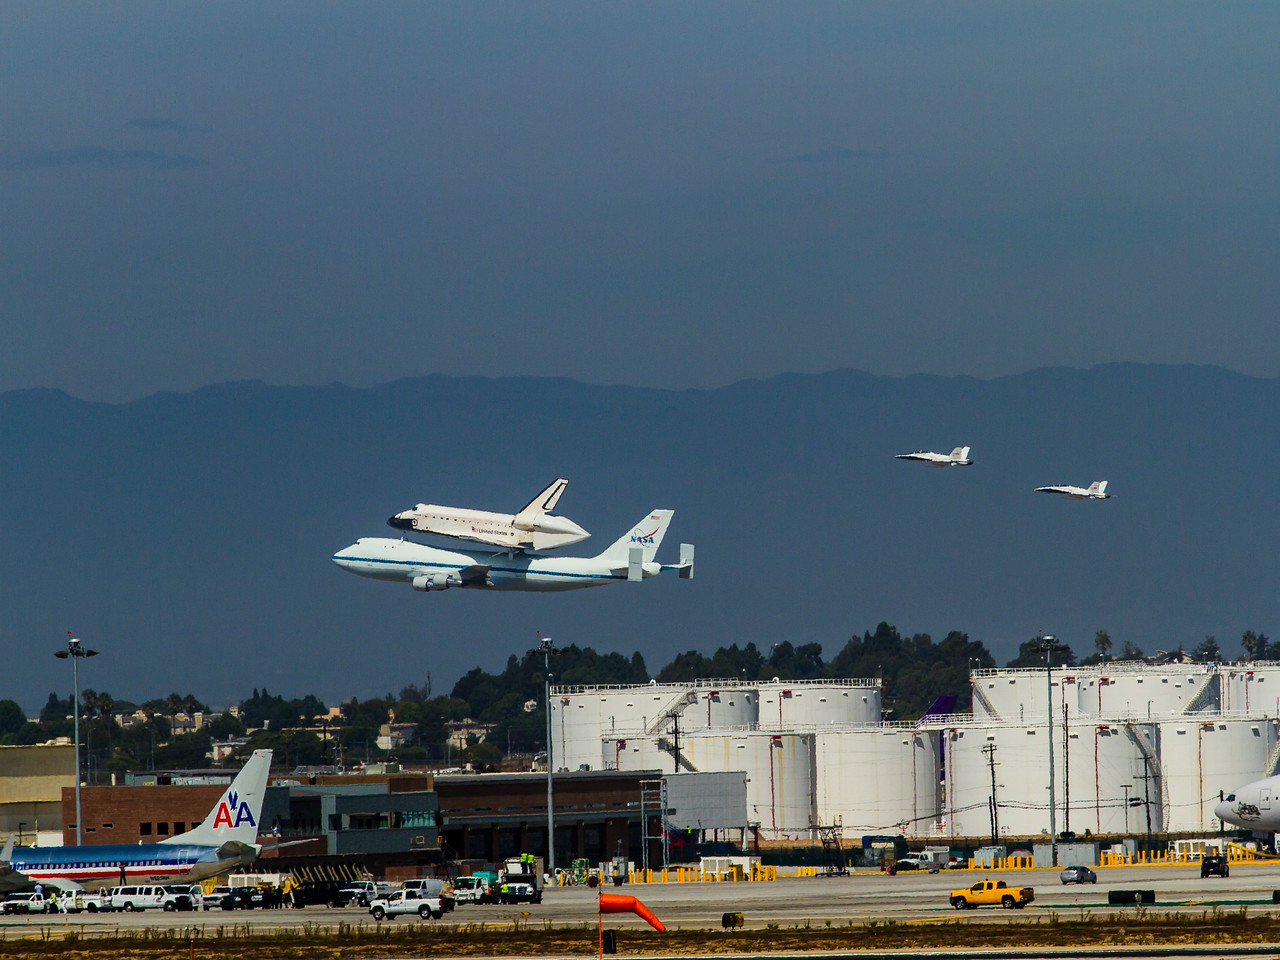 I was invited by the City of El Segundo to capture the fly by's and final landing of the Space Shuttle Endeavor. Here I have captured her final landing at LAX.